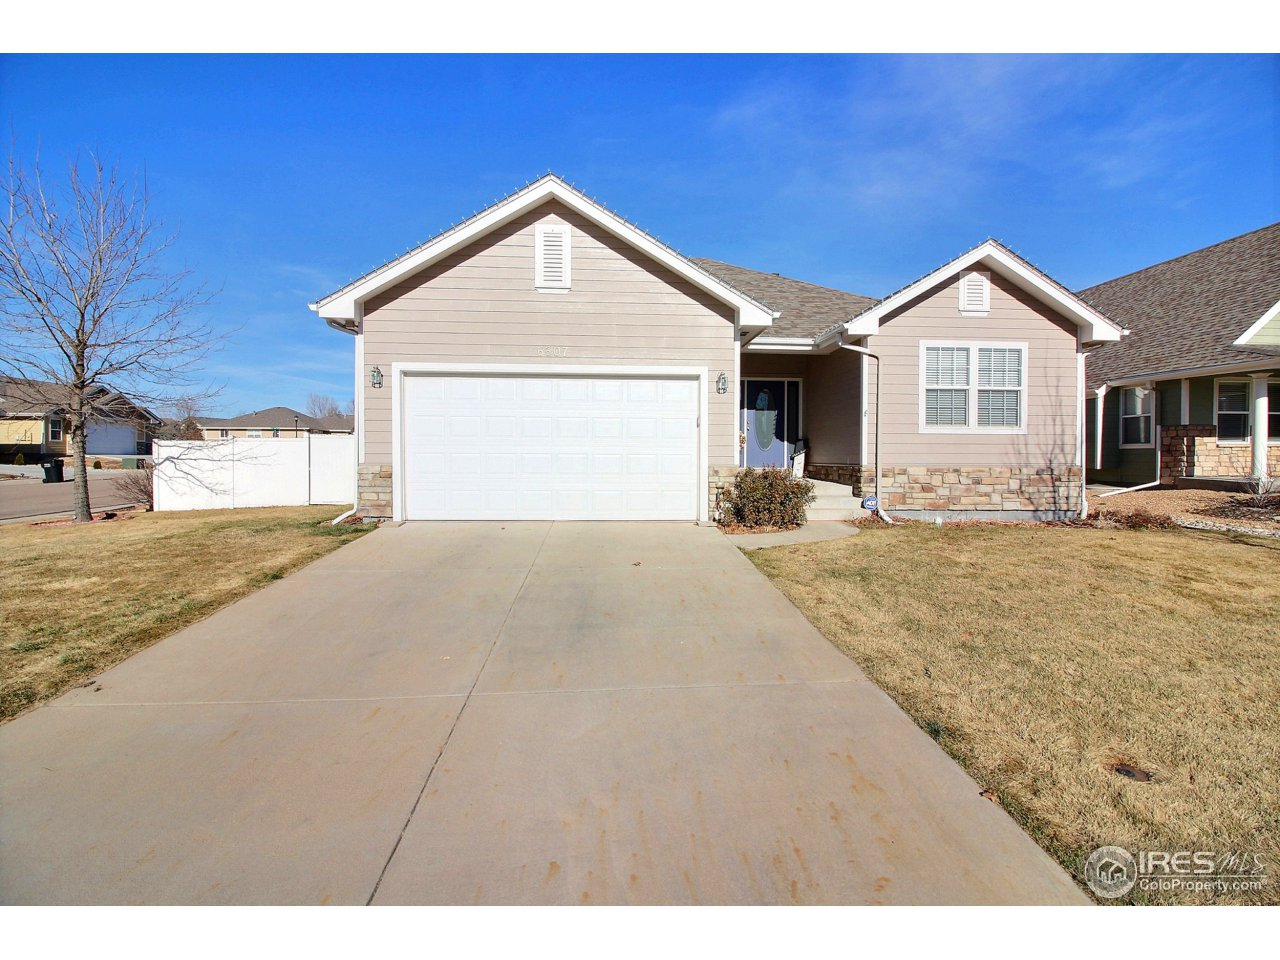 6607 34th St, Greeley CO 80634